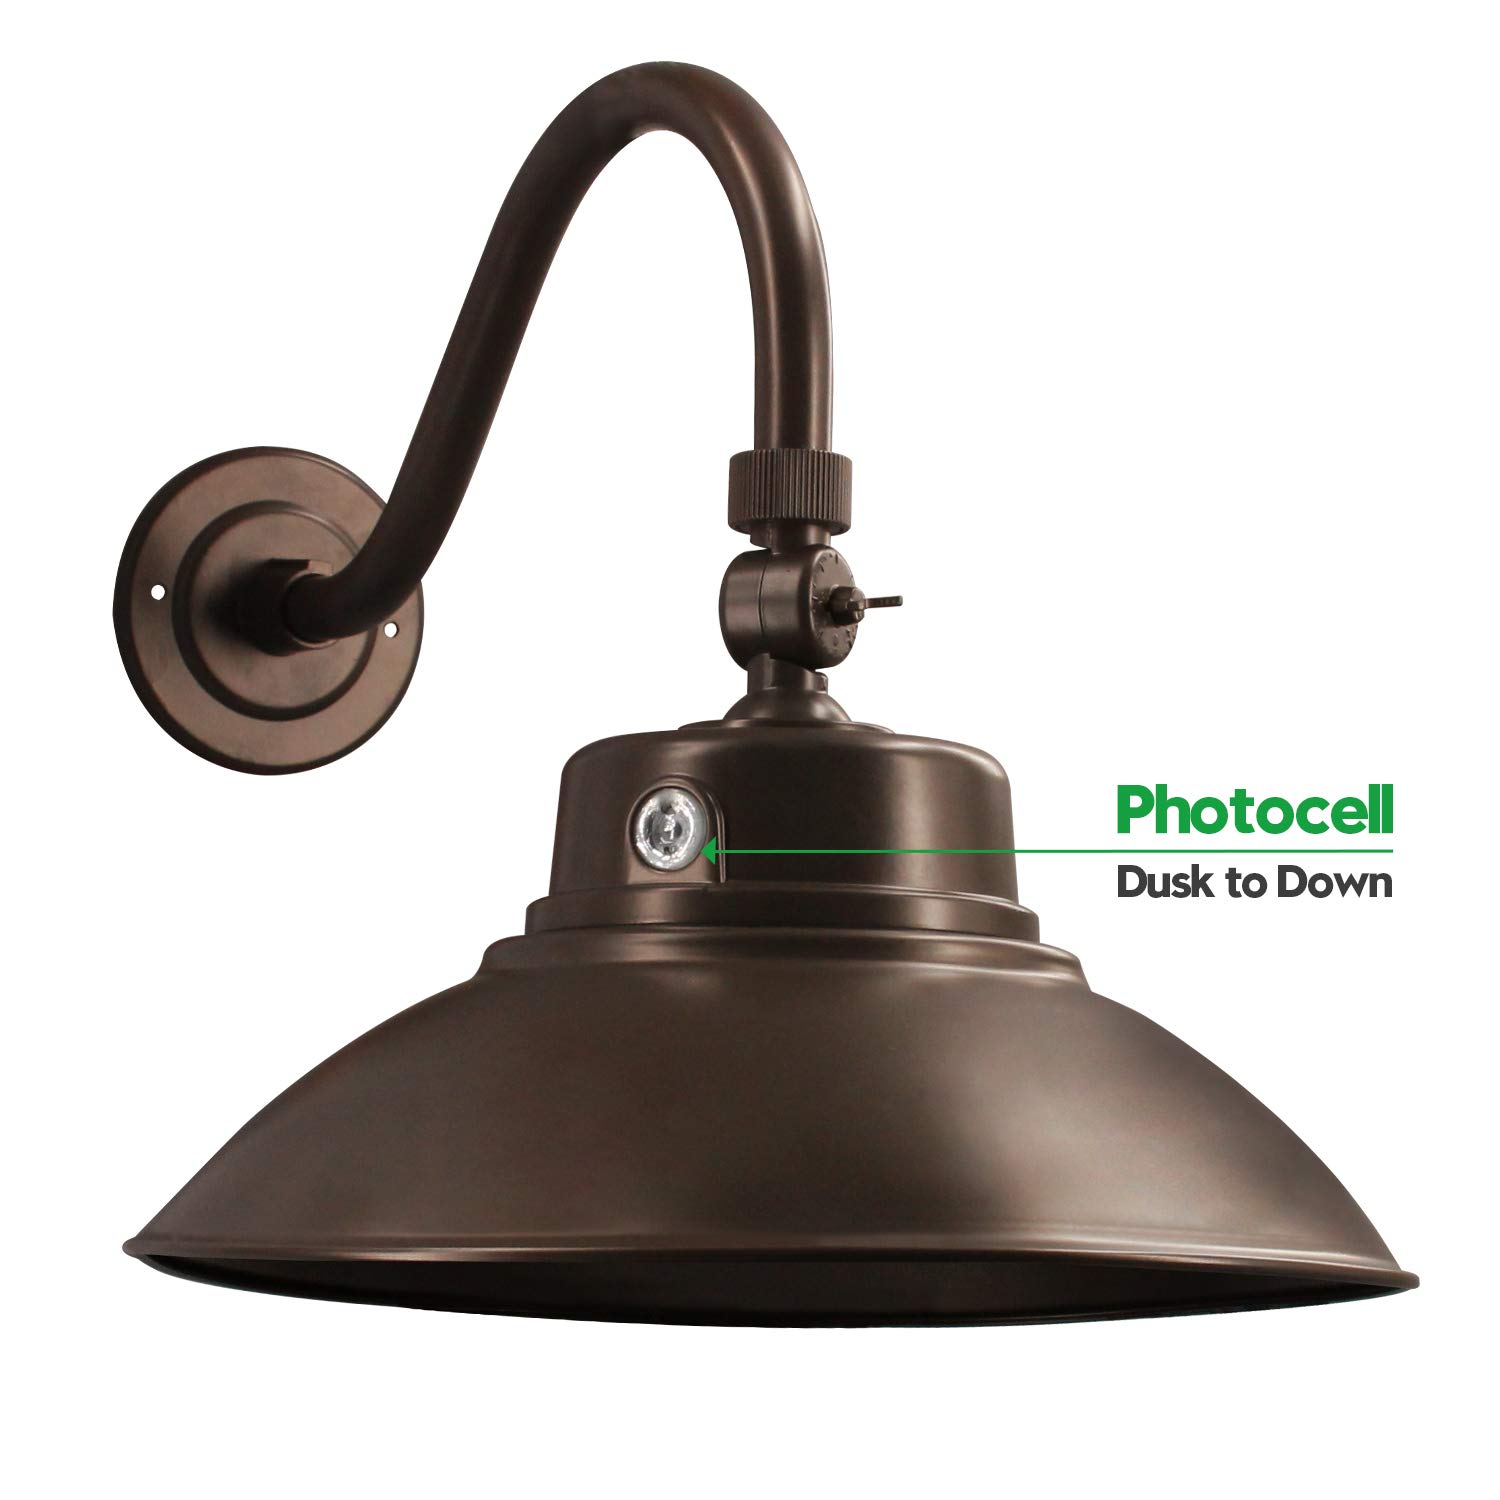 Brown LED Gooseneck Barn Light 14 Inch Classic Steel Shade 42W 4200lm Wall Porch Light - Photocell Included - 6000K Farmhouse Lighting